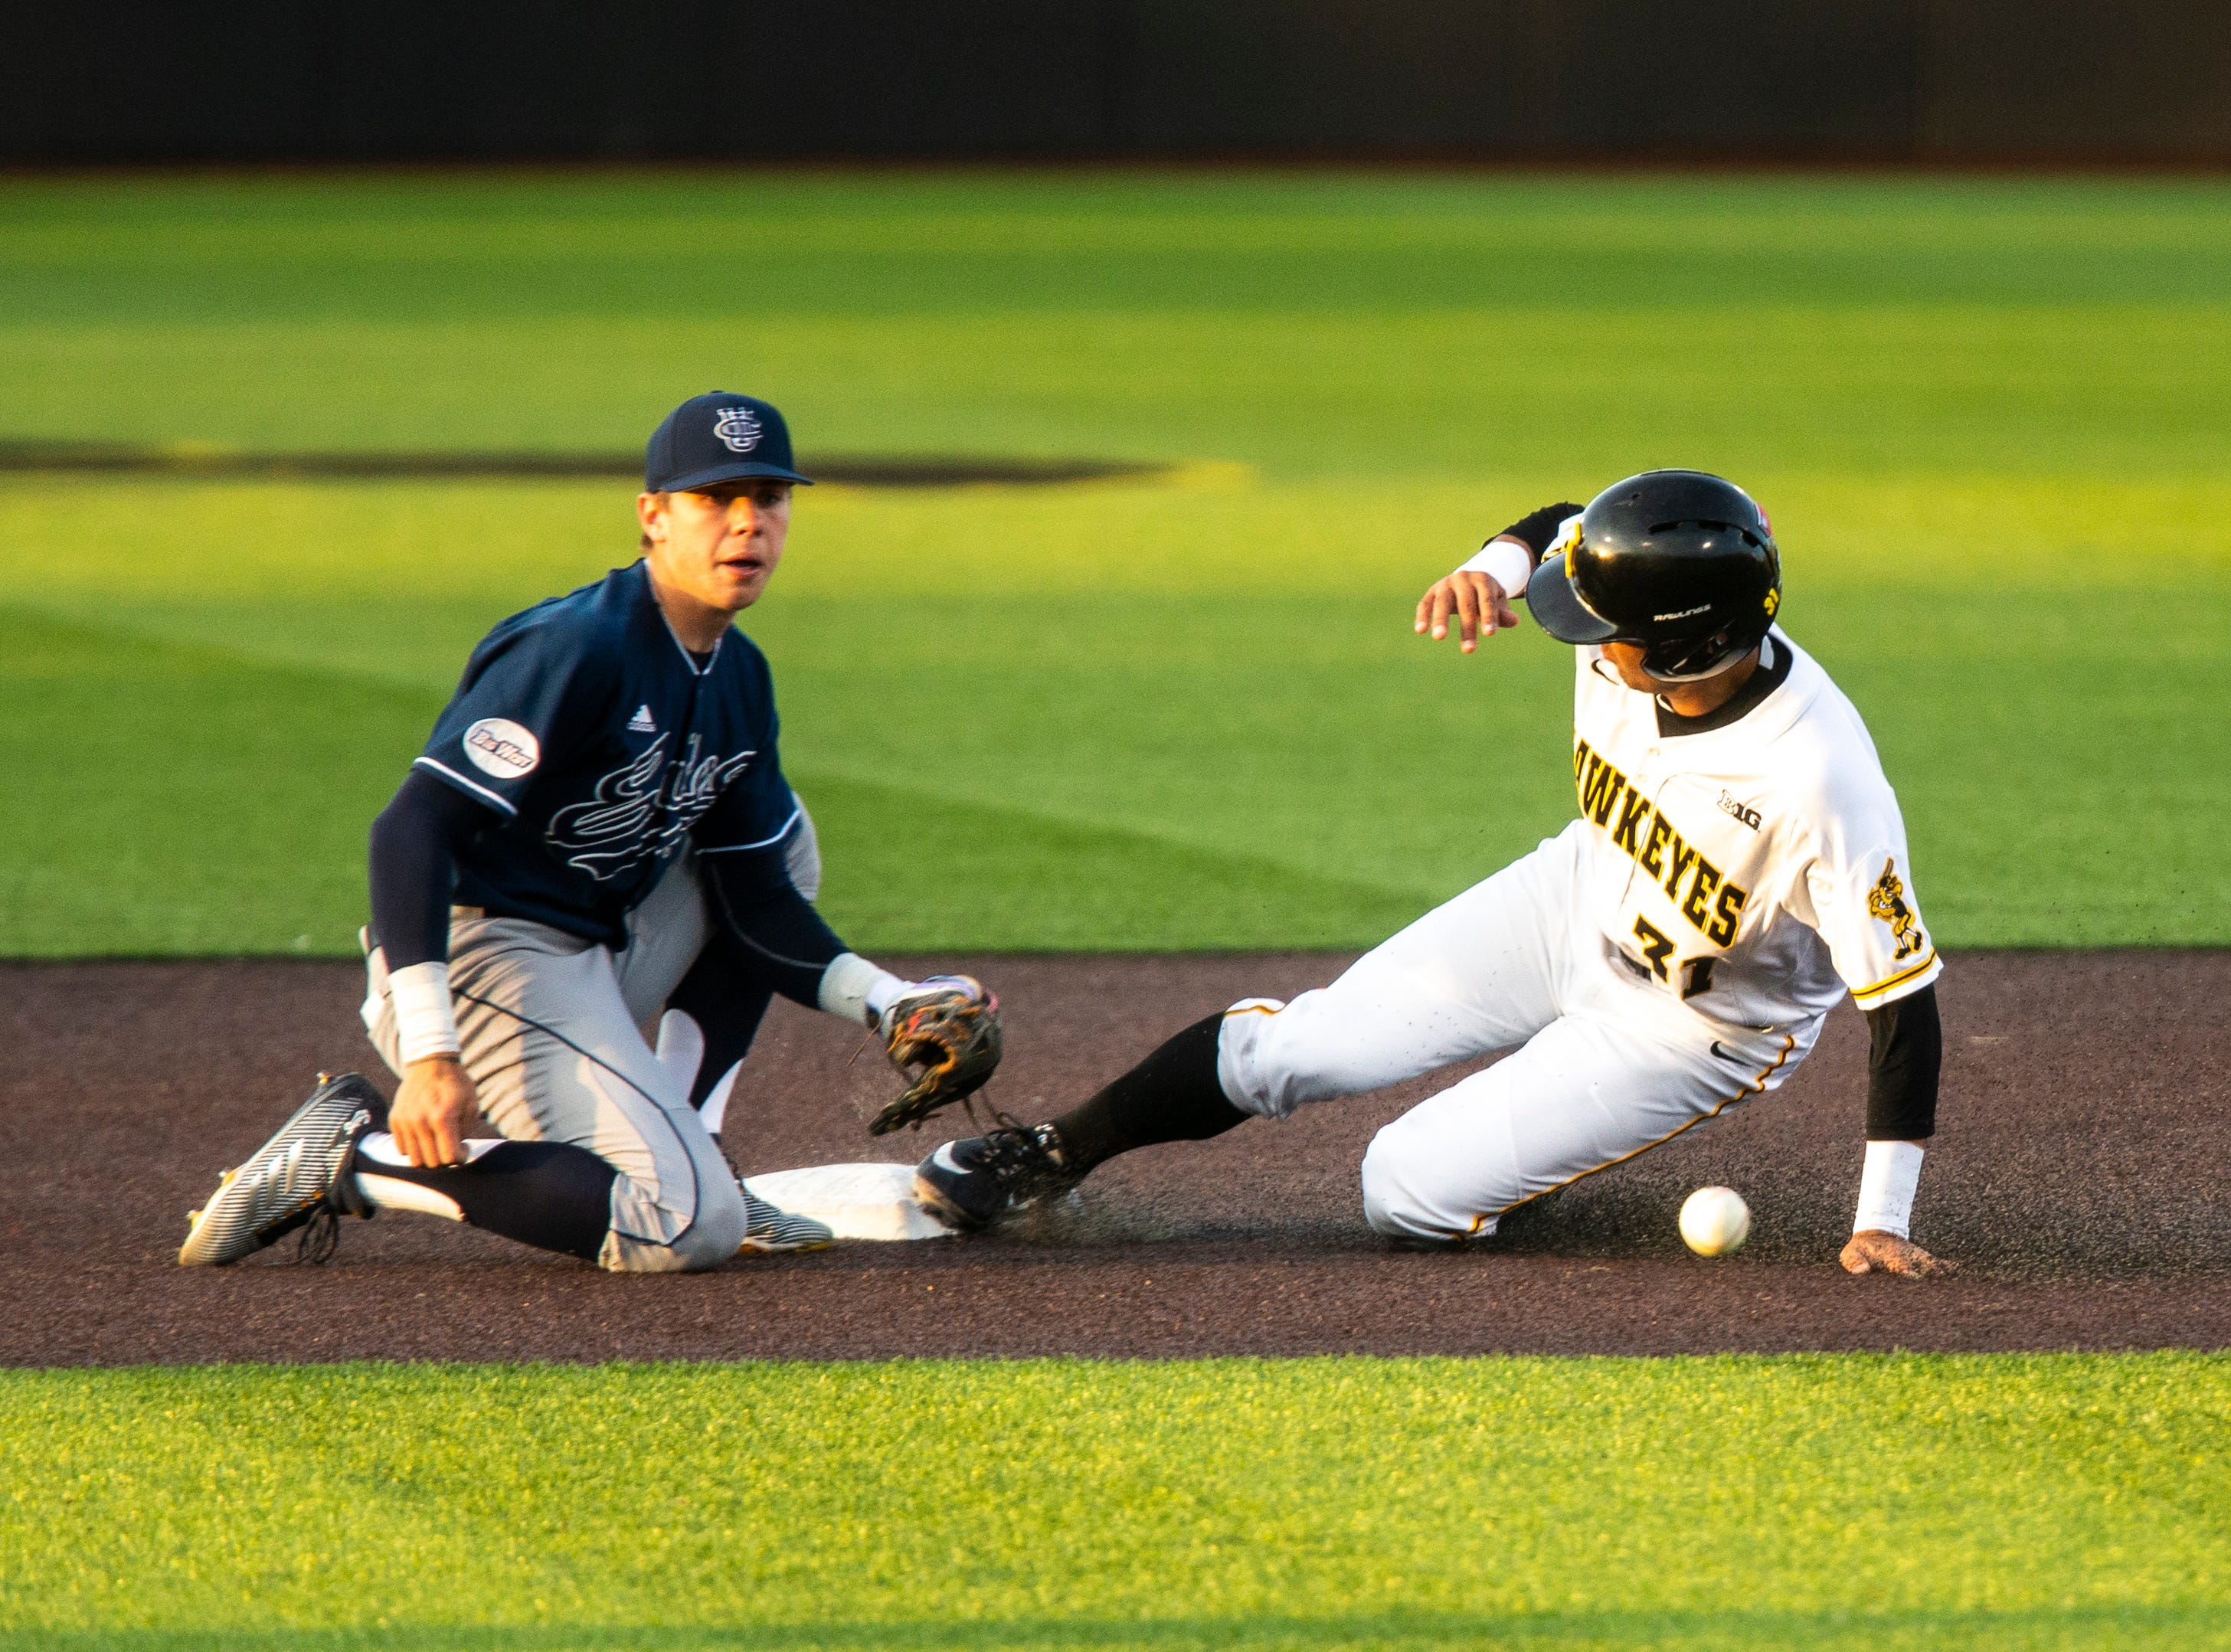 Iowa infielder Matthew Sosa (31) slides in to second ahead of a bouncing throw to University of California Irving's Christian Koss during NCAA non conference baseball game, Friday, May 3, 2019, at Duane Banks Field in Iowa City, Iowa.